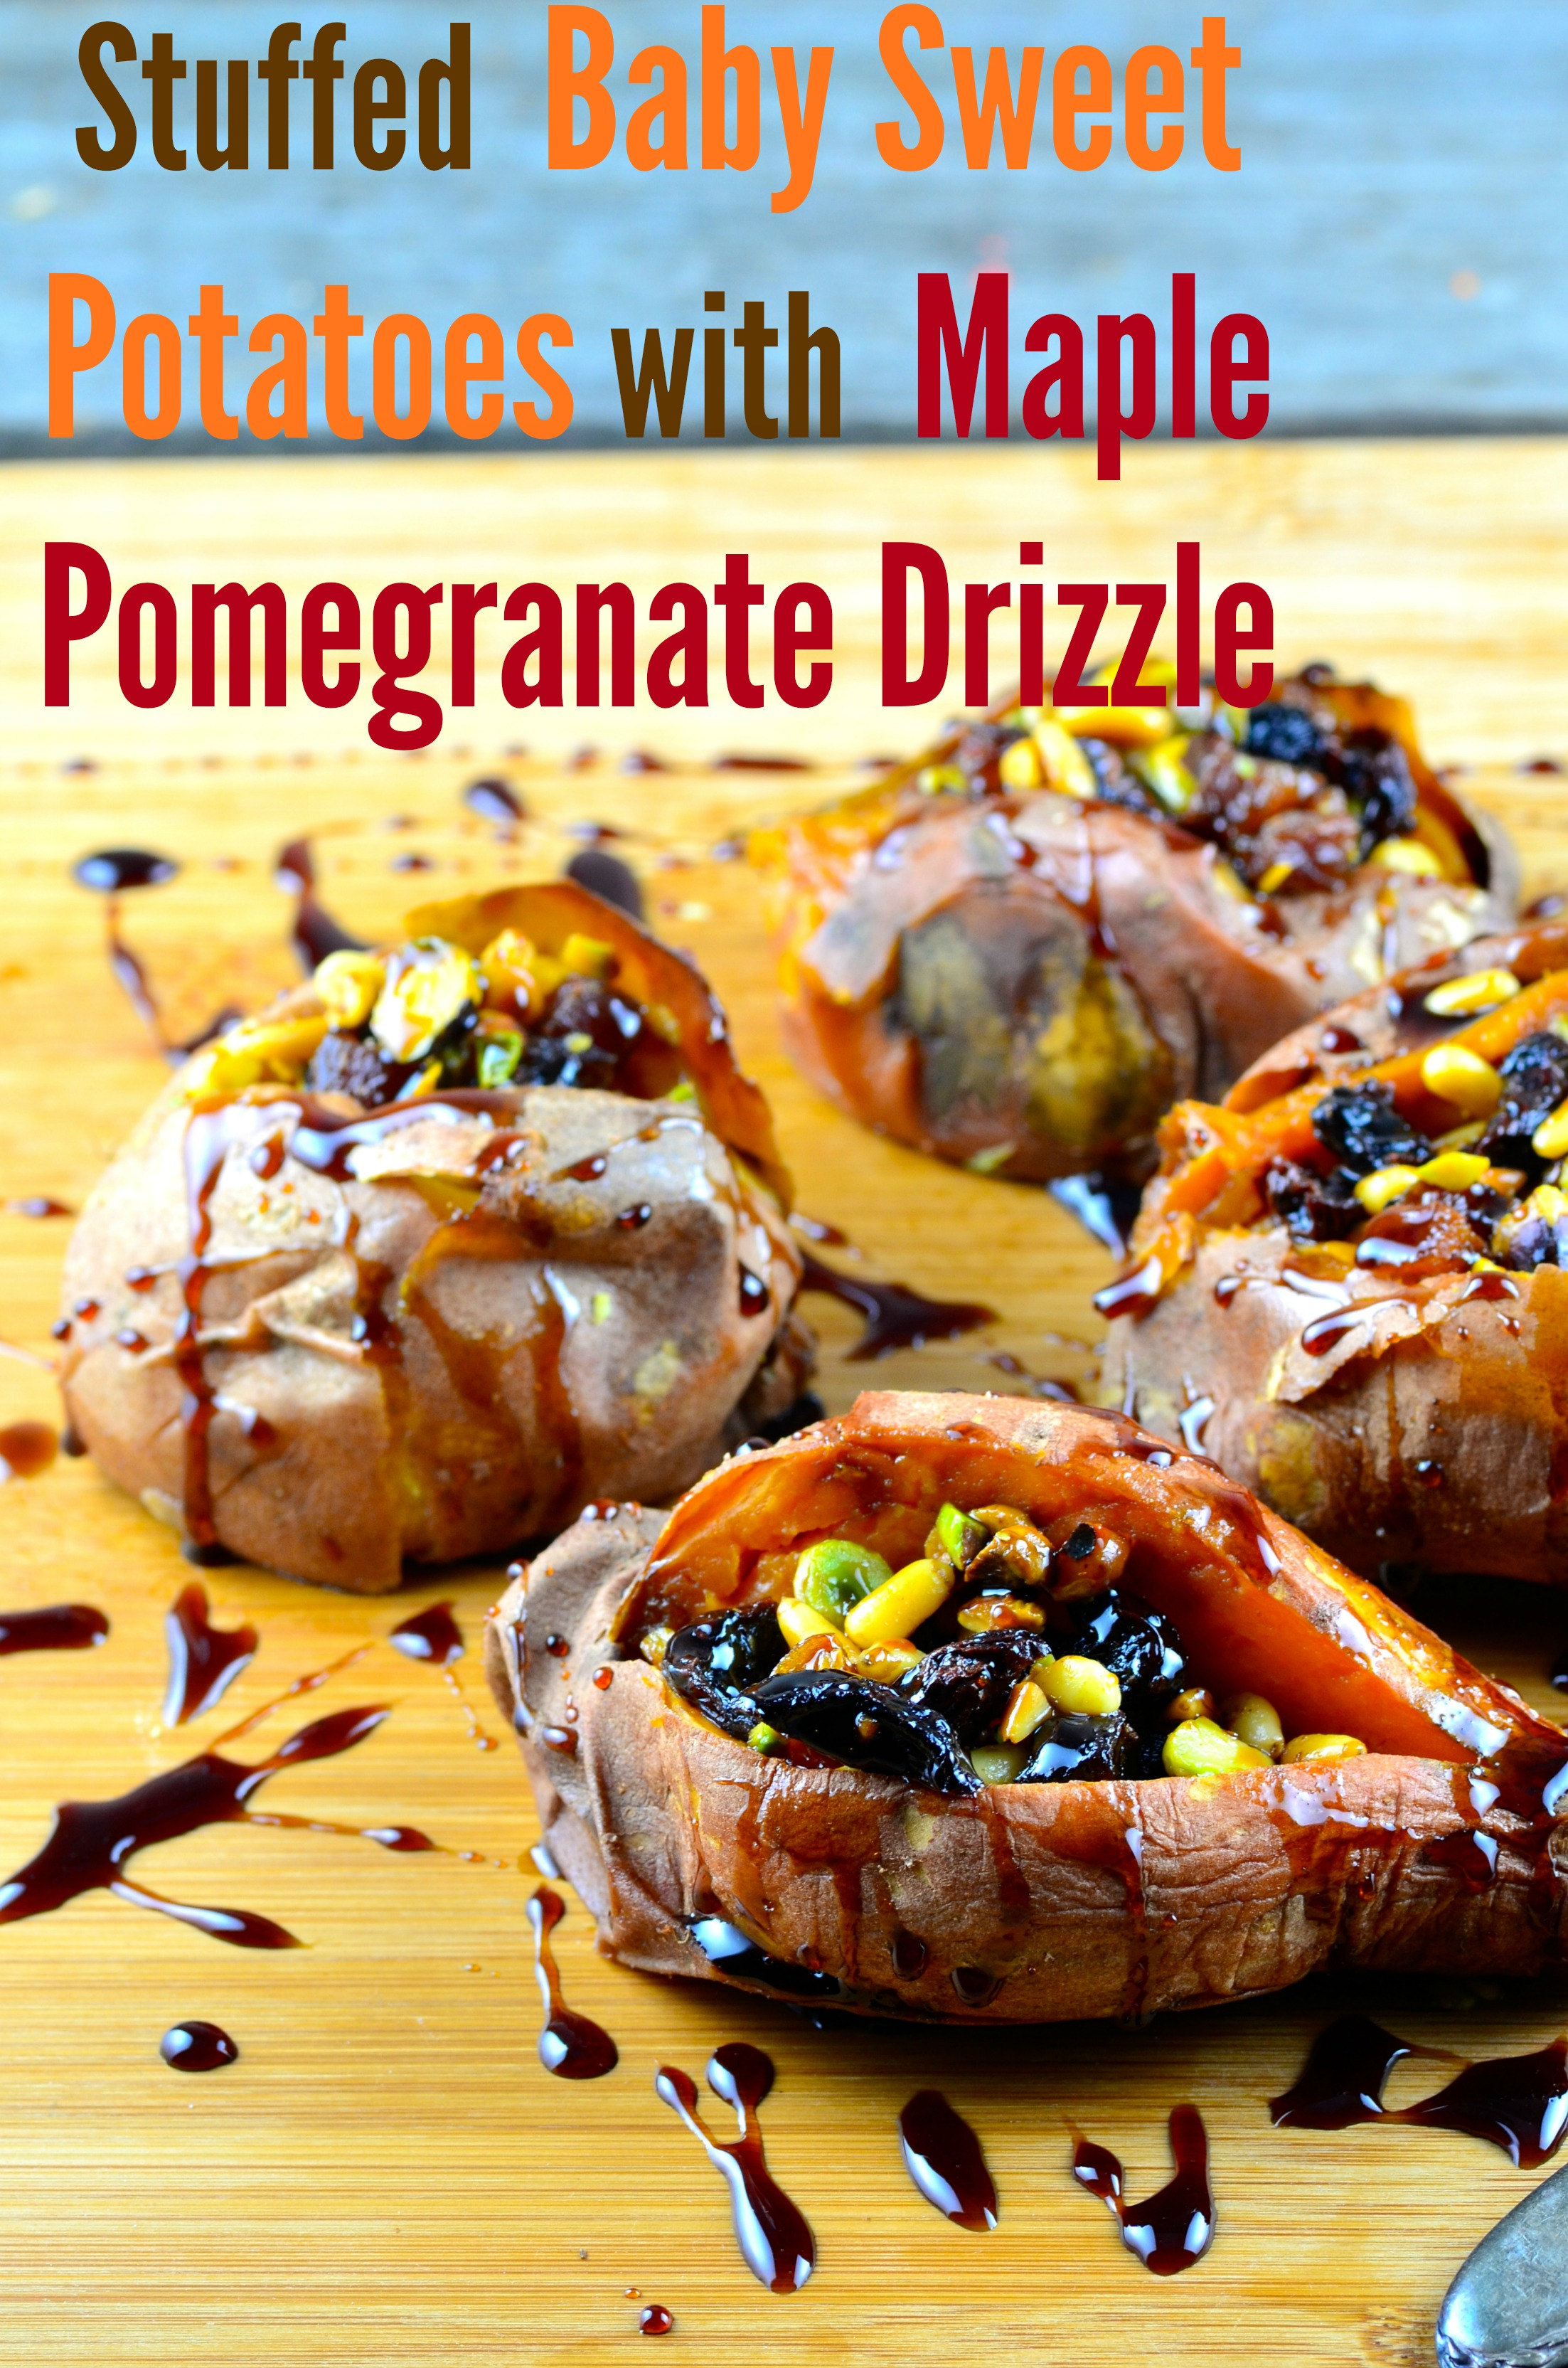 Stuffed Baby Sweet Potatoes With Maple Pomegranate  Drizzle